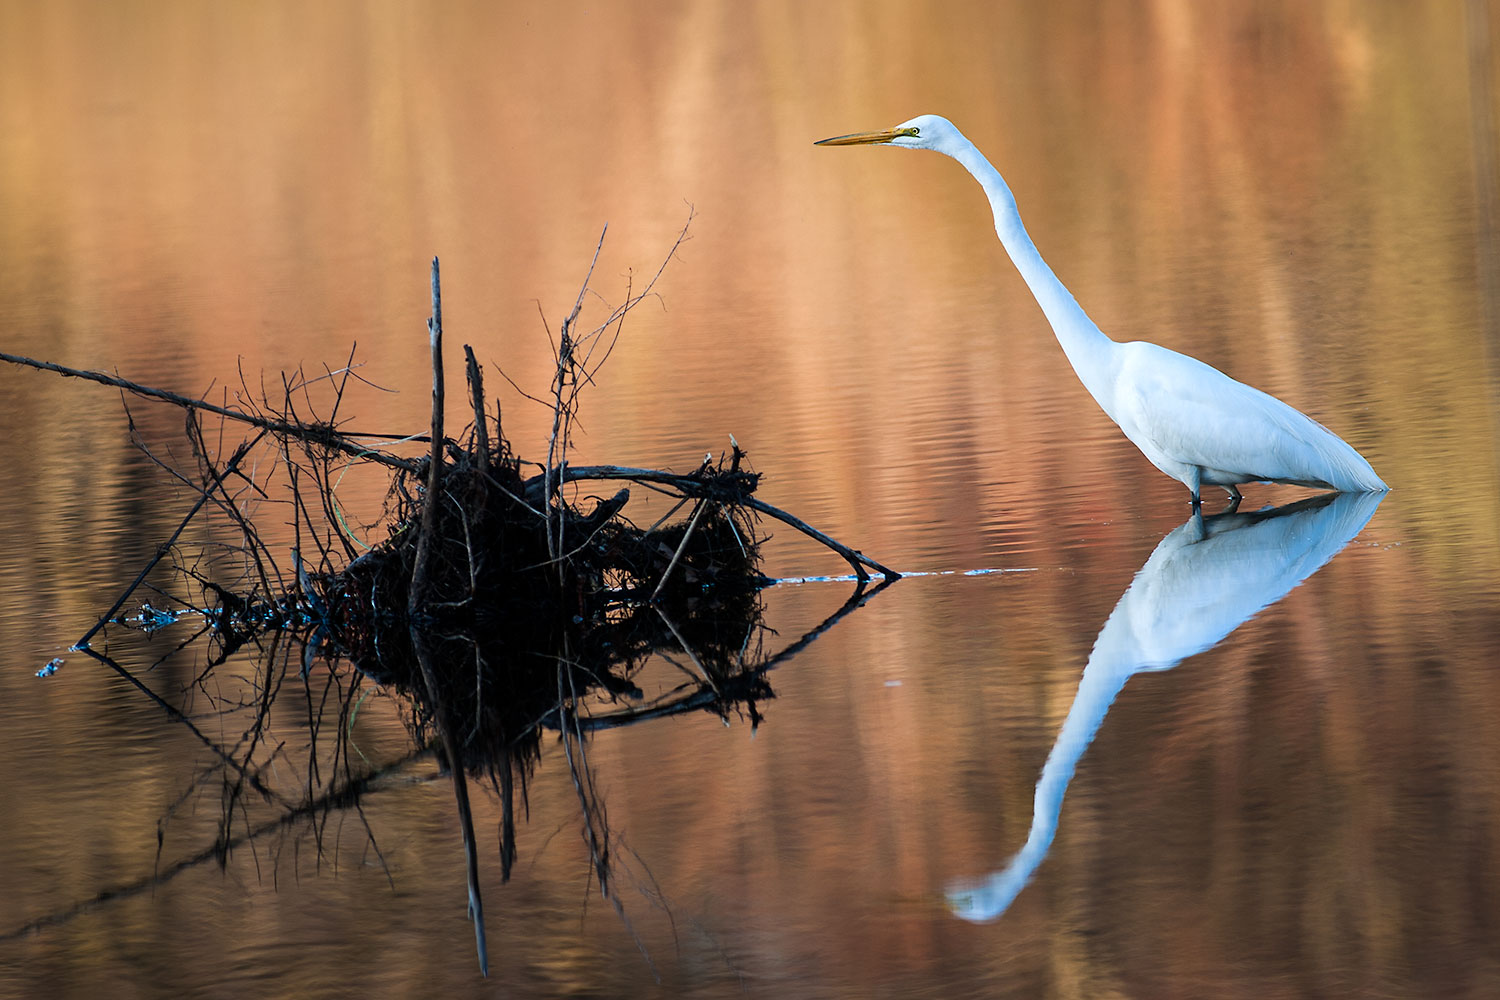 Great egret on the water with reflection